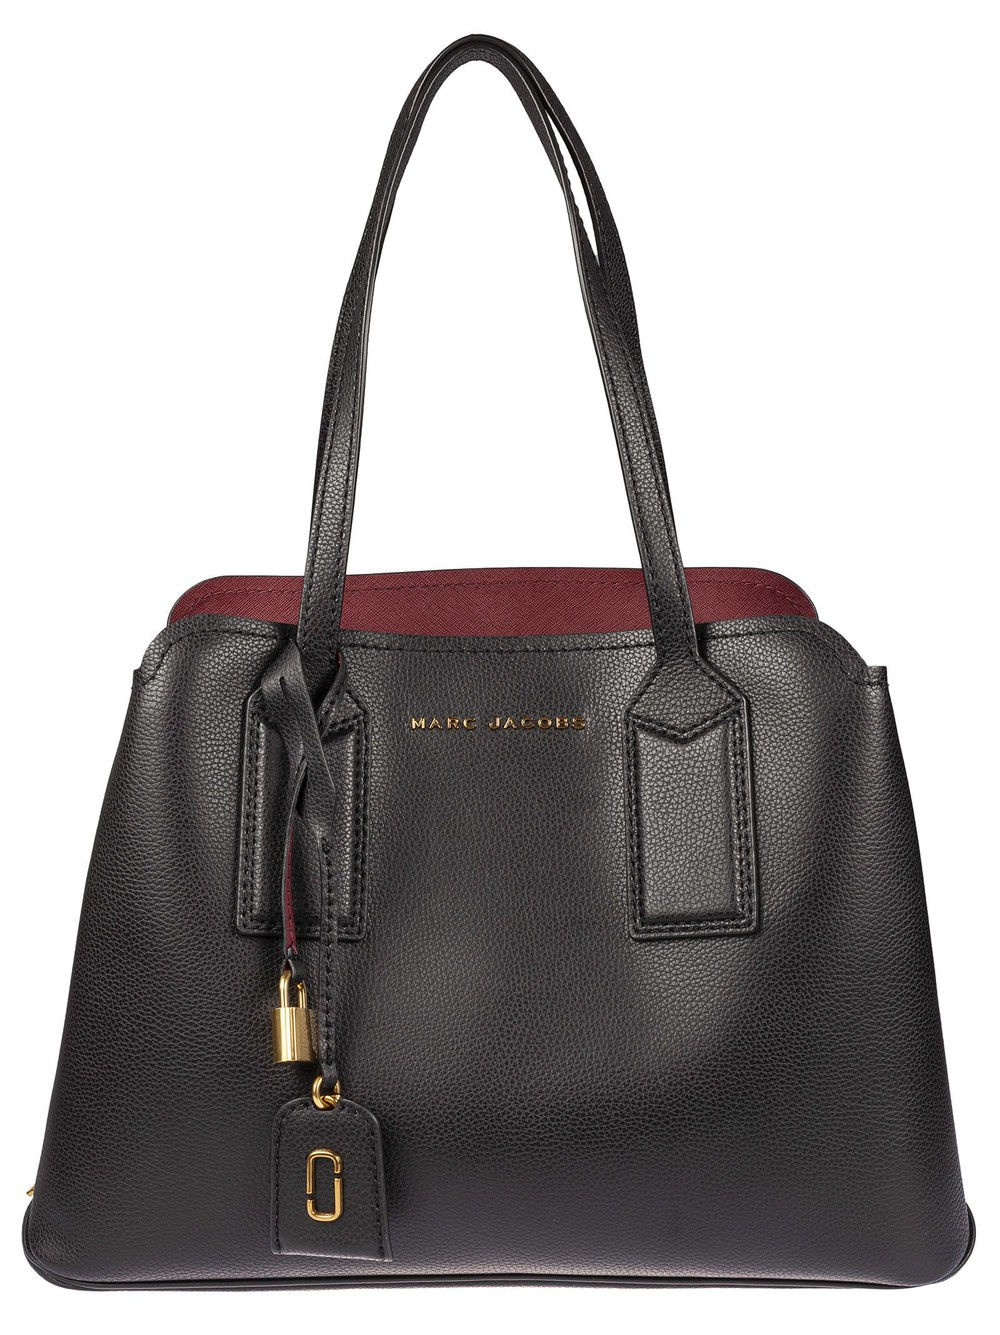 Marc Jacobs The Editor Tote in black